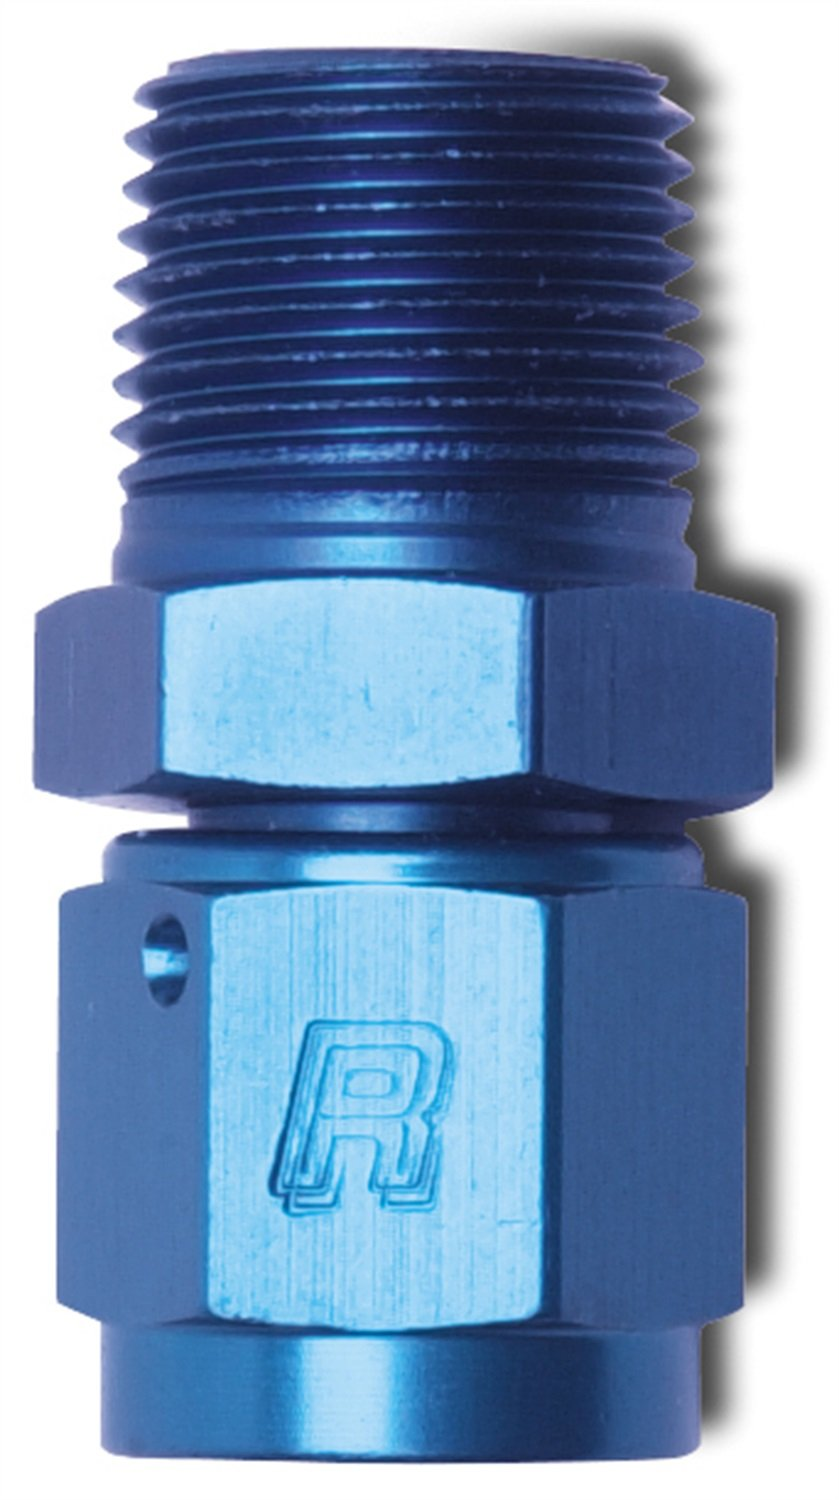 Russell RUS-614214 ADAPTER FITTING